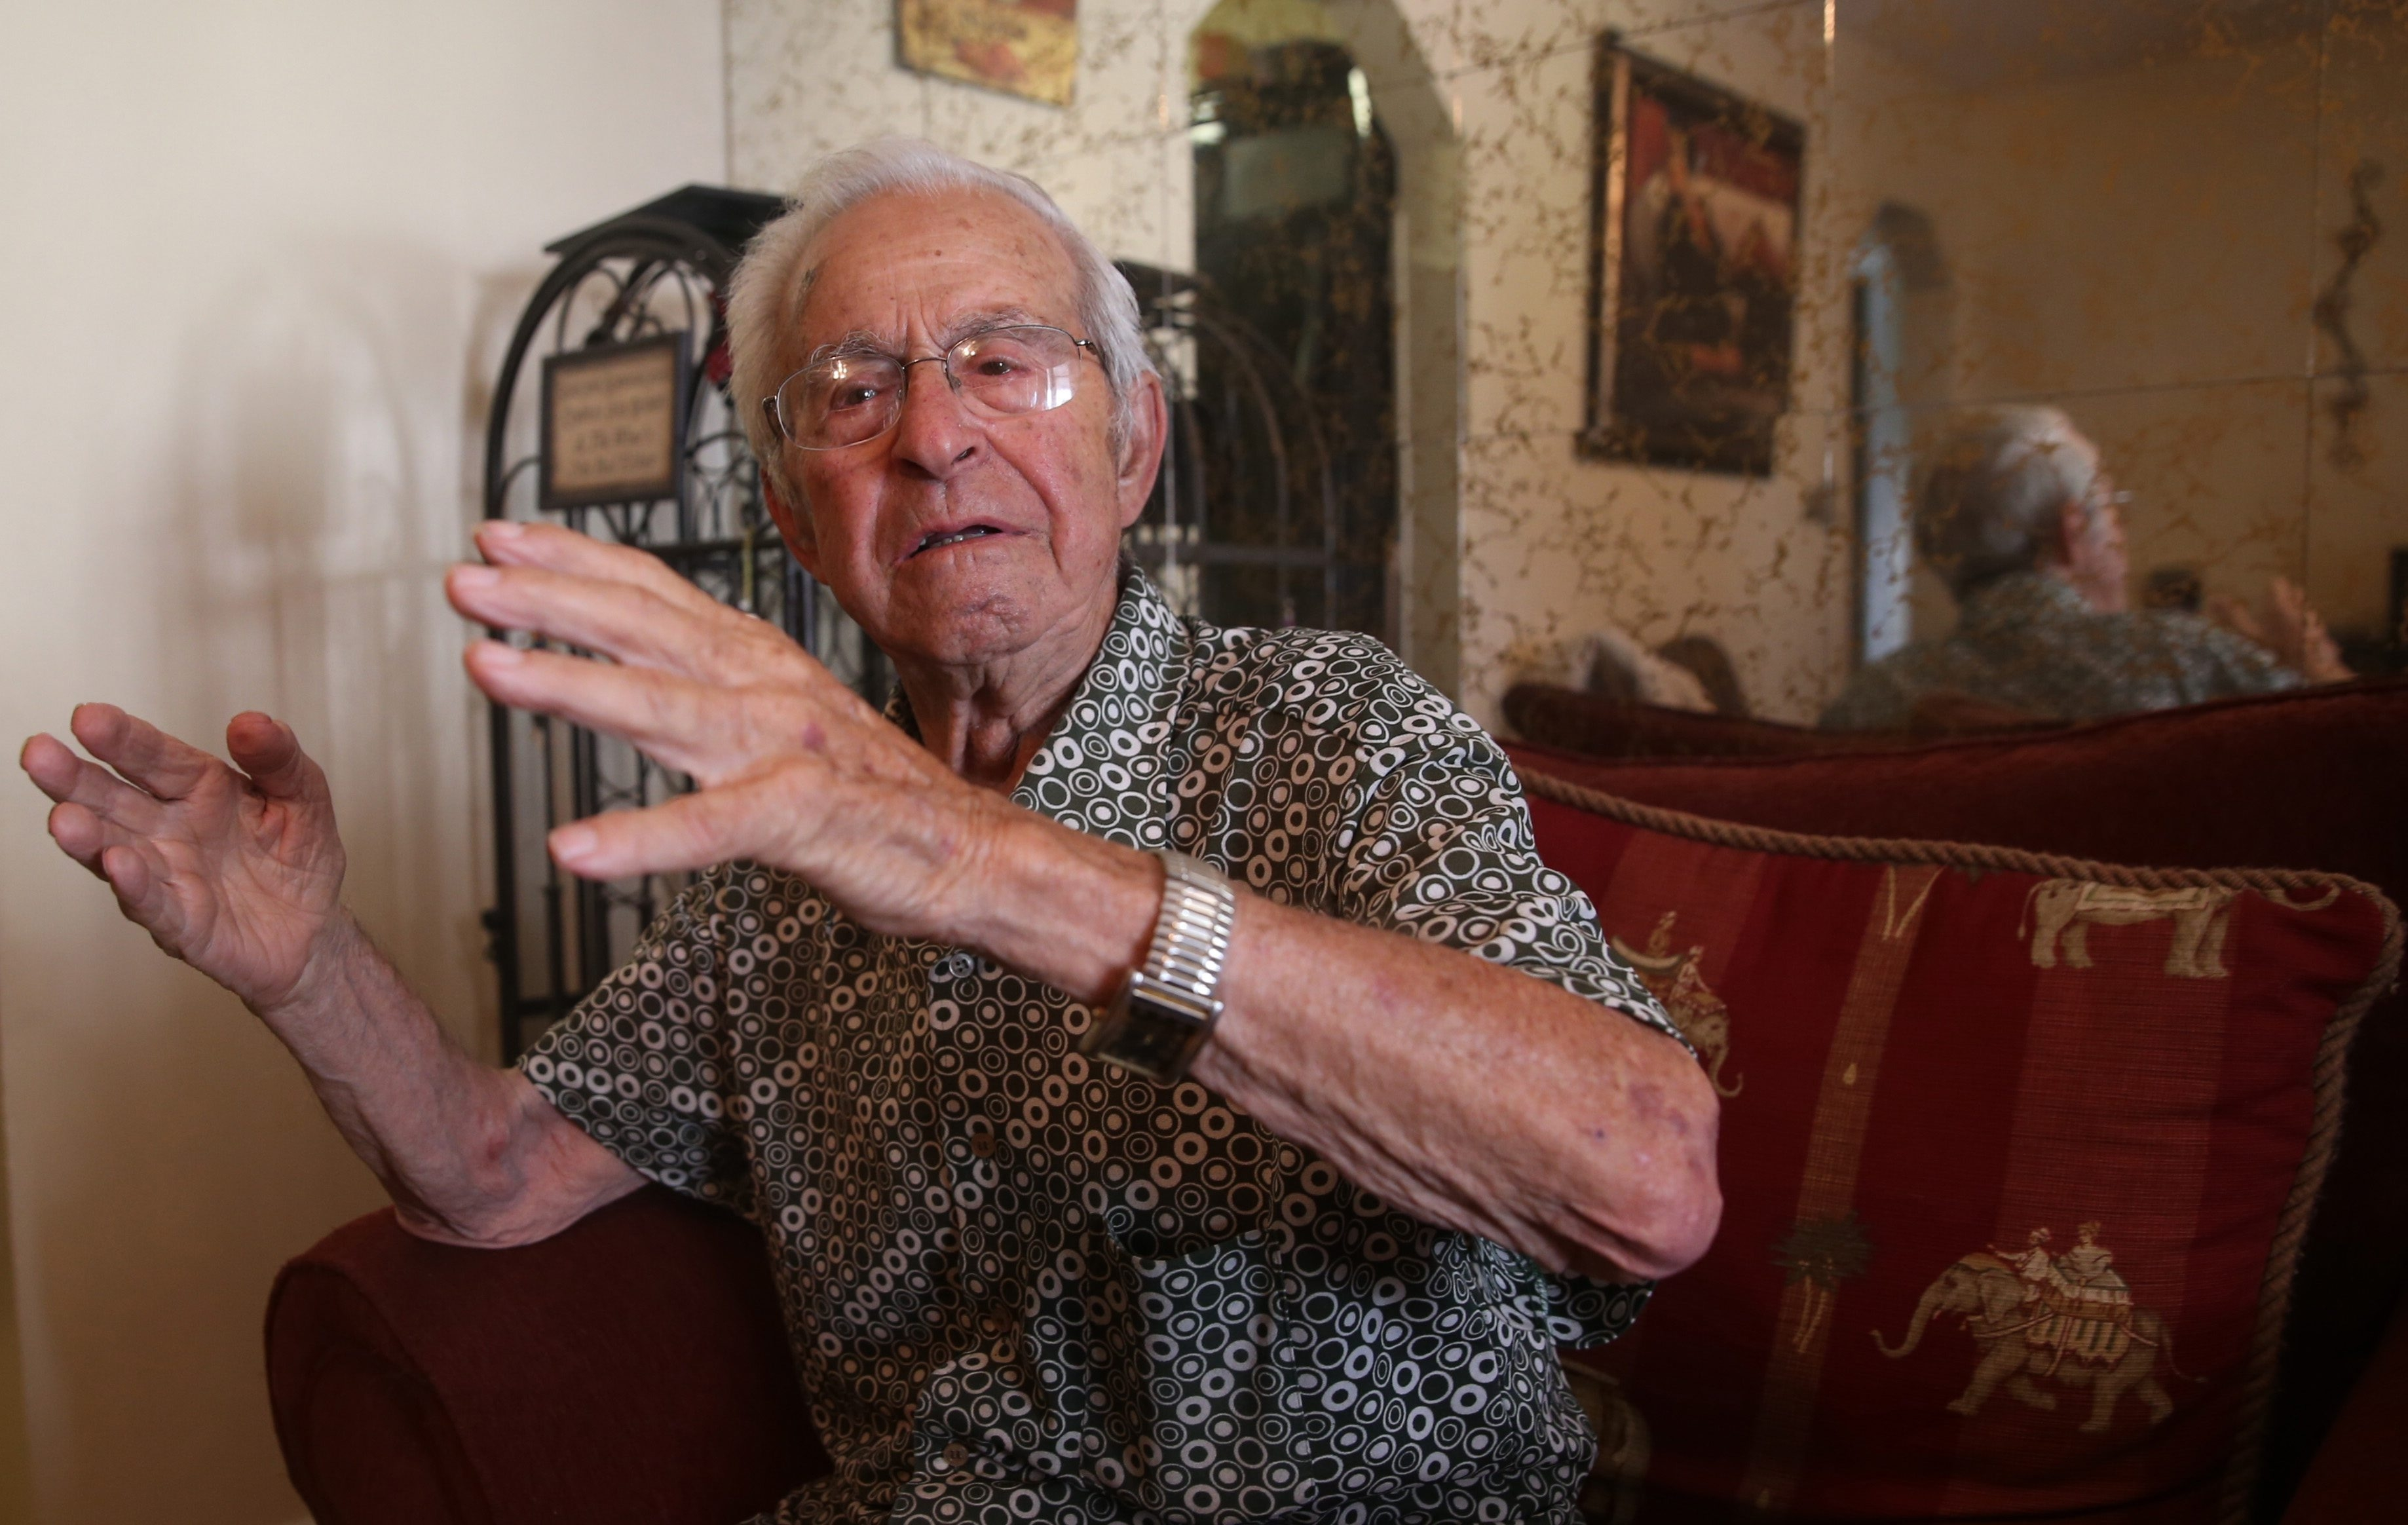 Carmen S. Turchiarelli, who immigrated to the United States from Italy when he was 5, recalls frightful WWII combat.